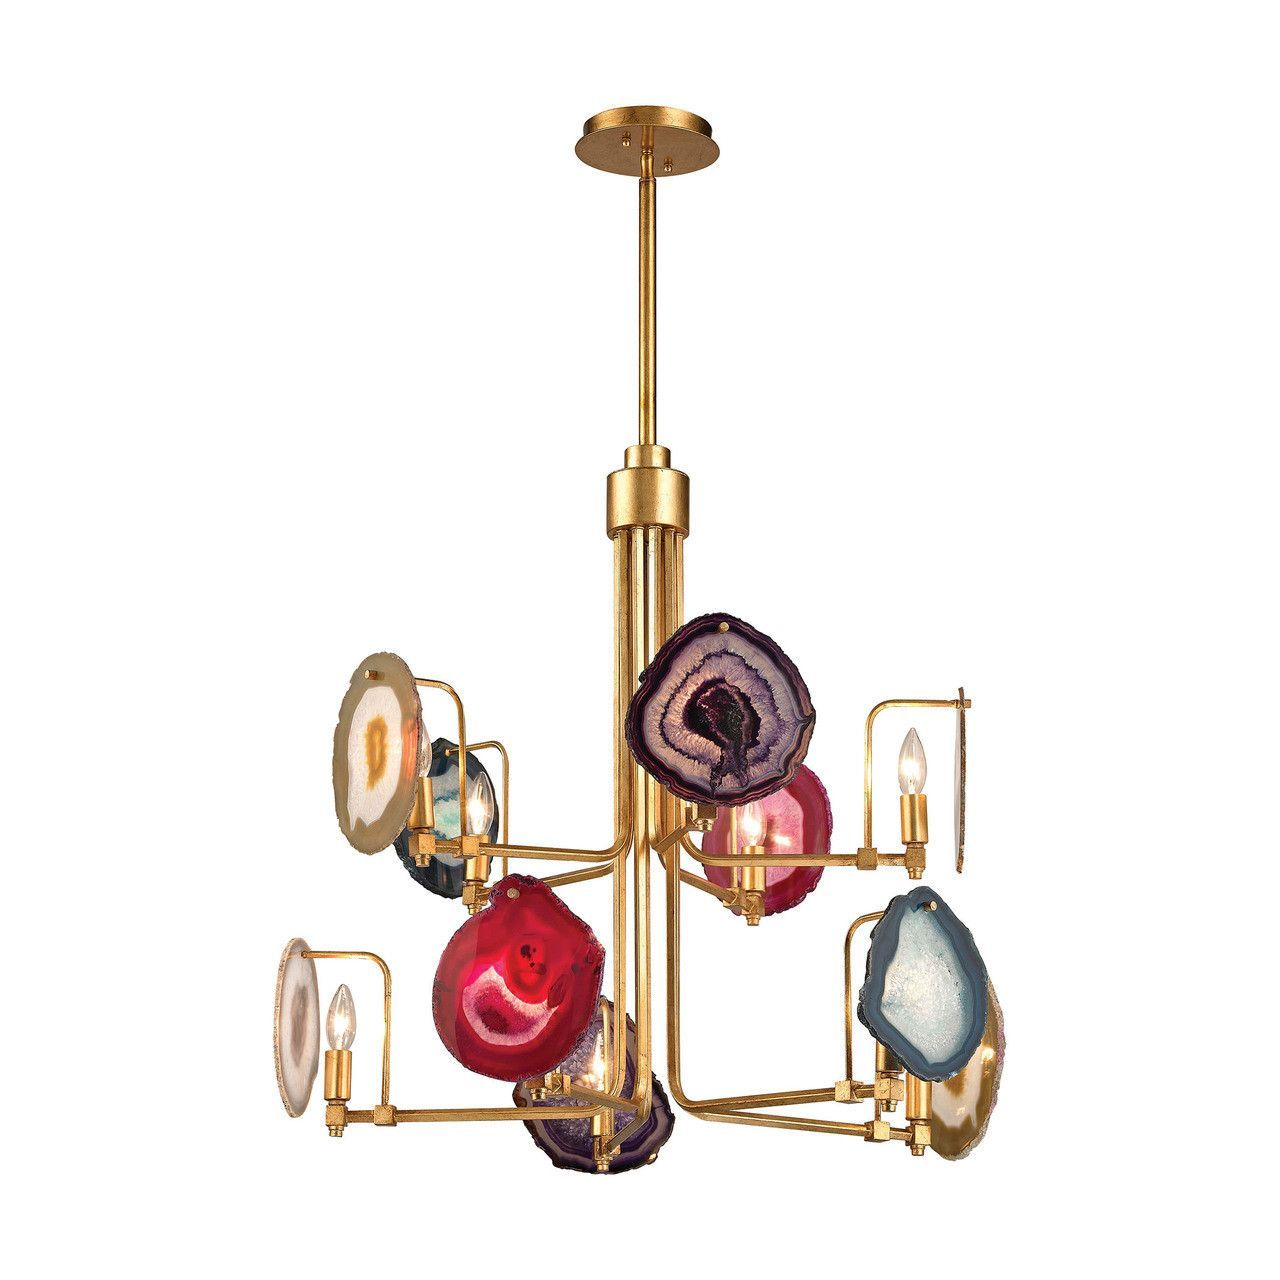 Gallery 10 light chandelier in antique gold leaf 1141 008 products dimond home gallery ten light chandelier chandelier lighting contemporary lights arubaitofo Choice Image